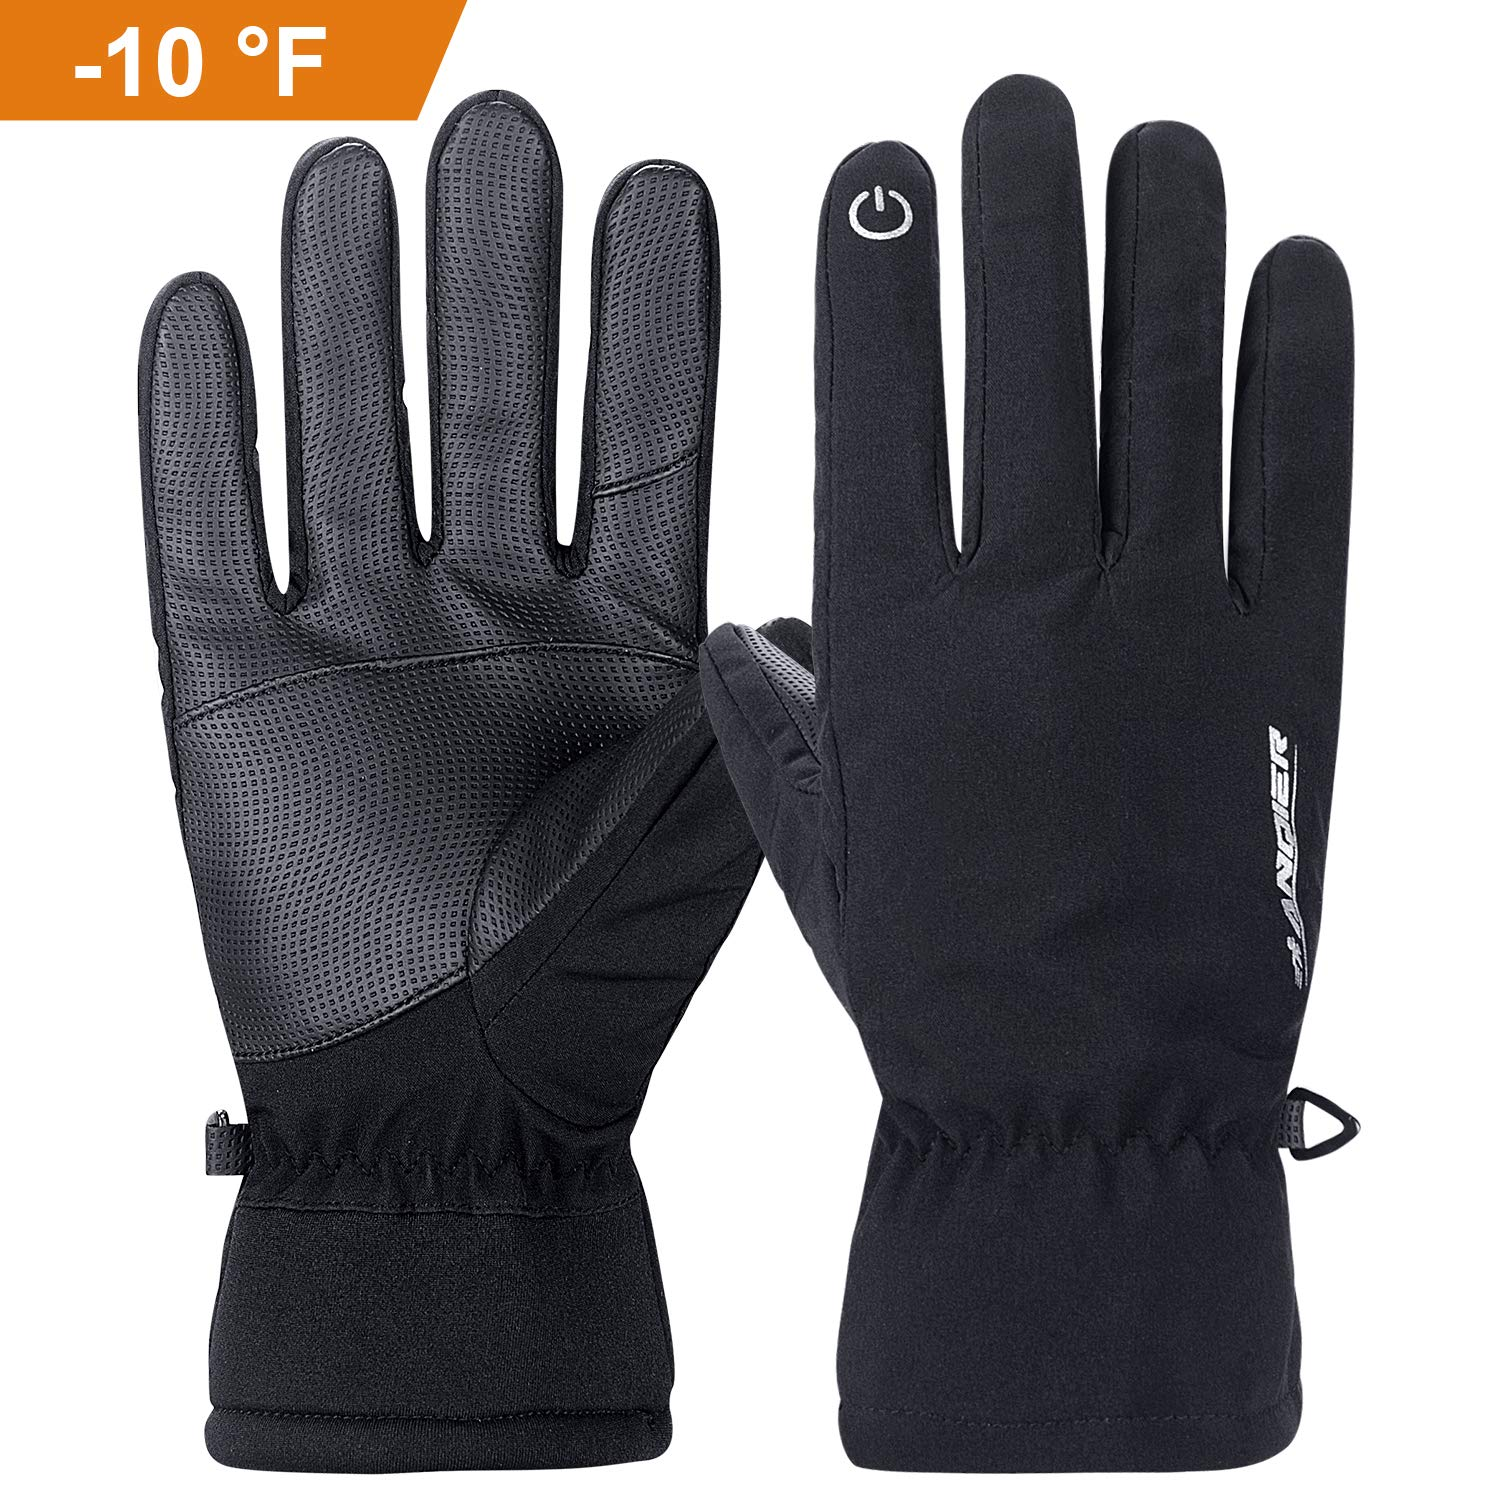 Anqier Winter Warm Touch Screen Gloves -10°F(-23℃) Cold Proof Thermal 3M Thinsulate Work Outdoor Sports Glove Windproof Water-Resistant Warm Hands in Cold Weather for Women Men